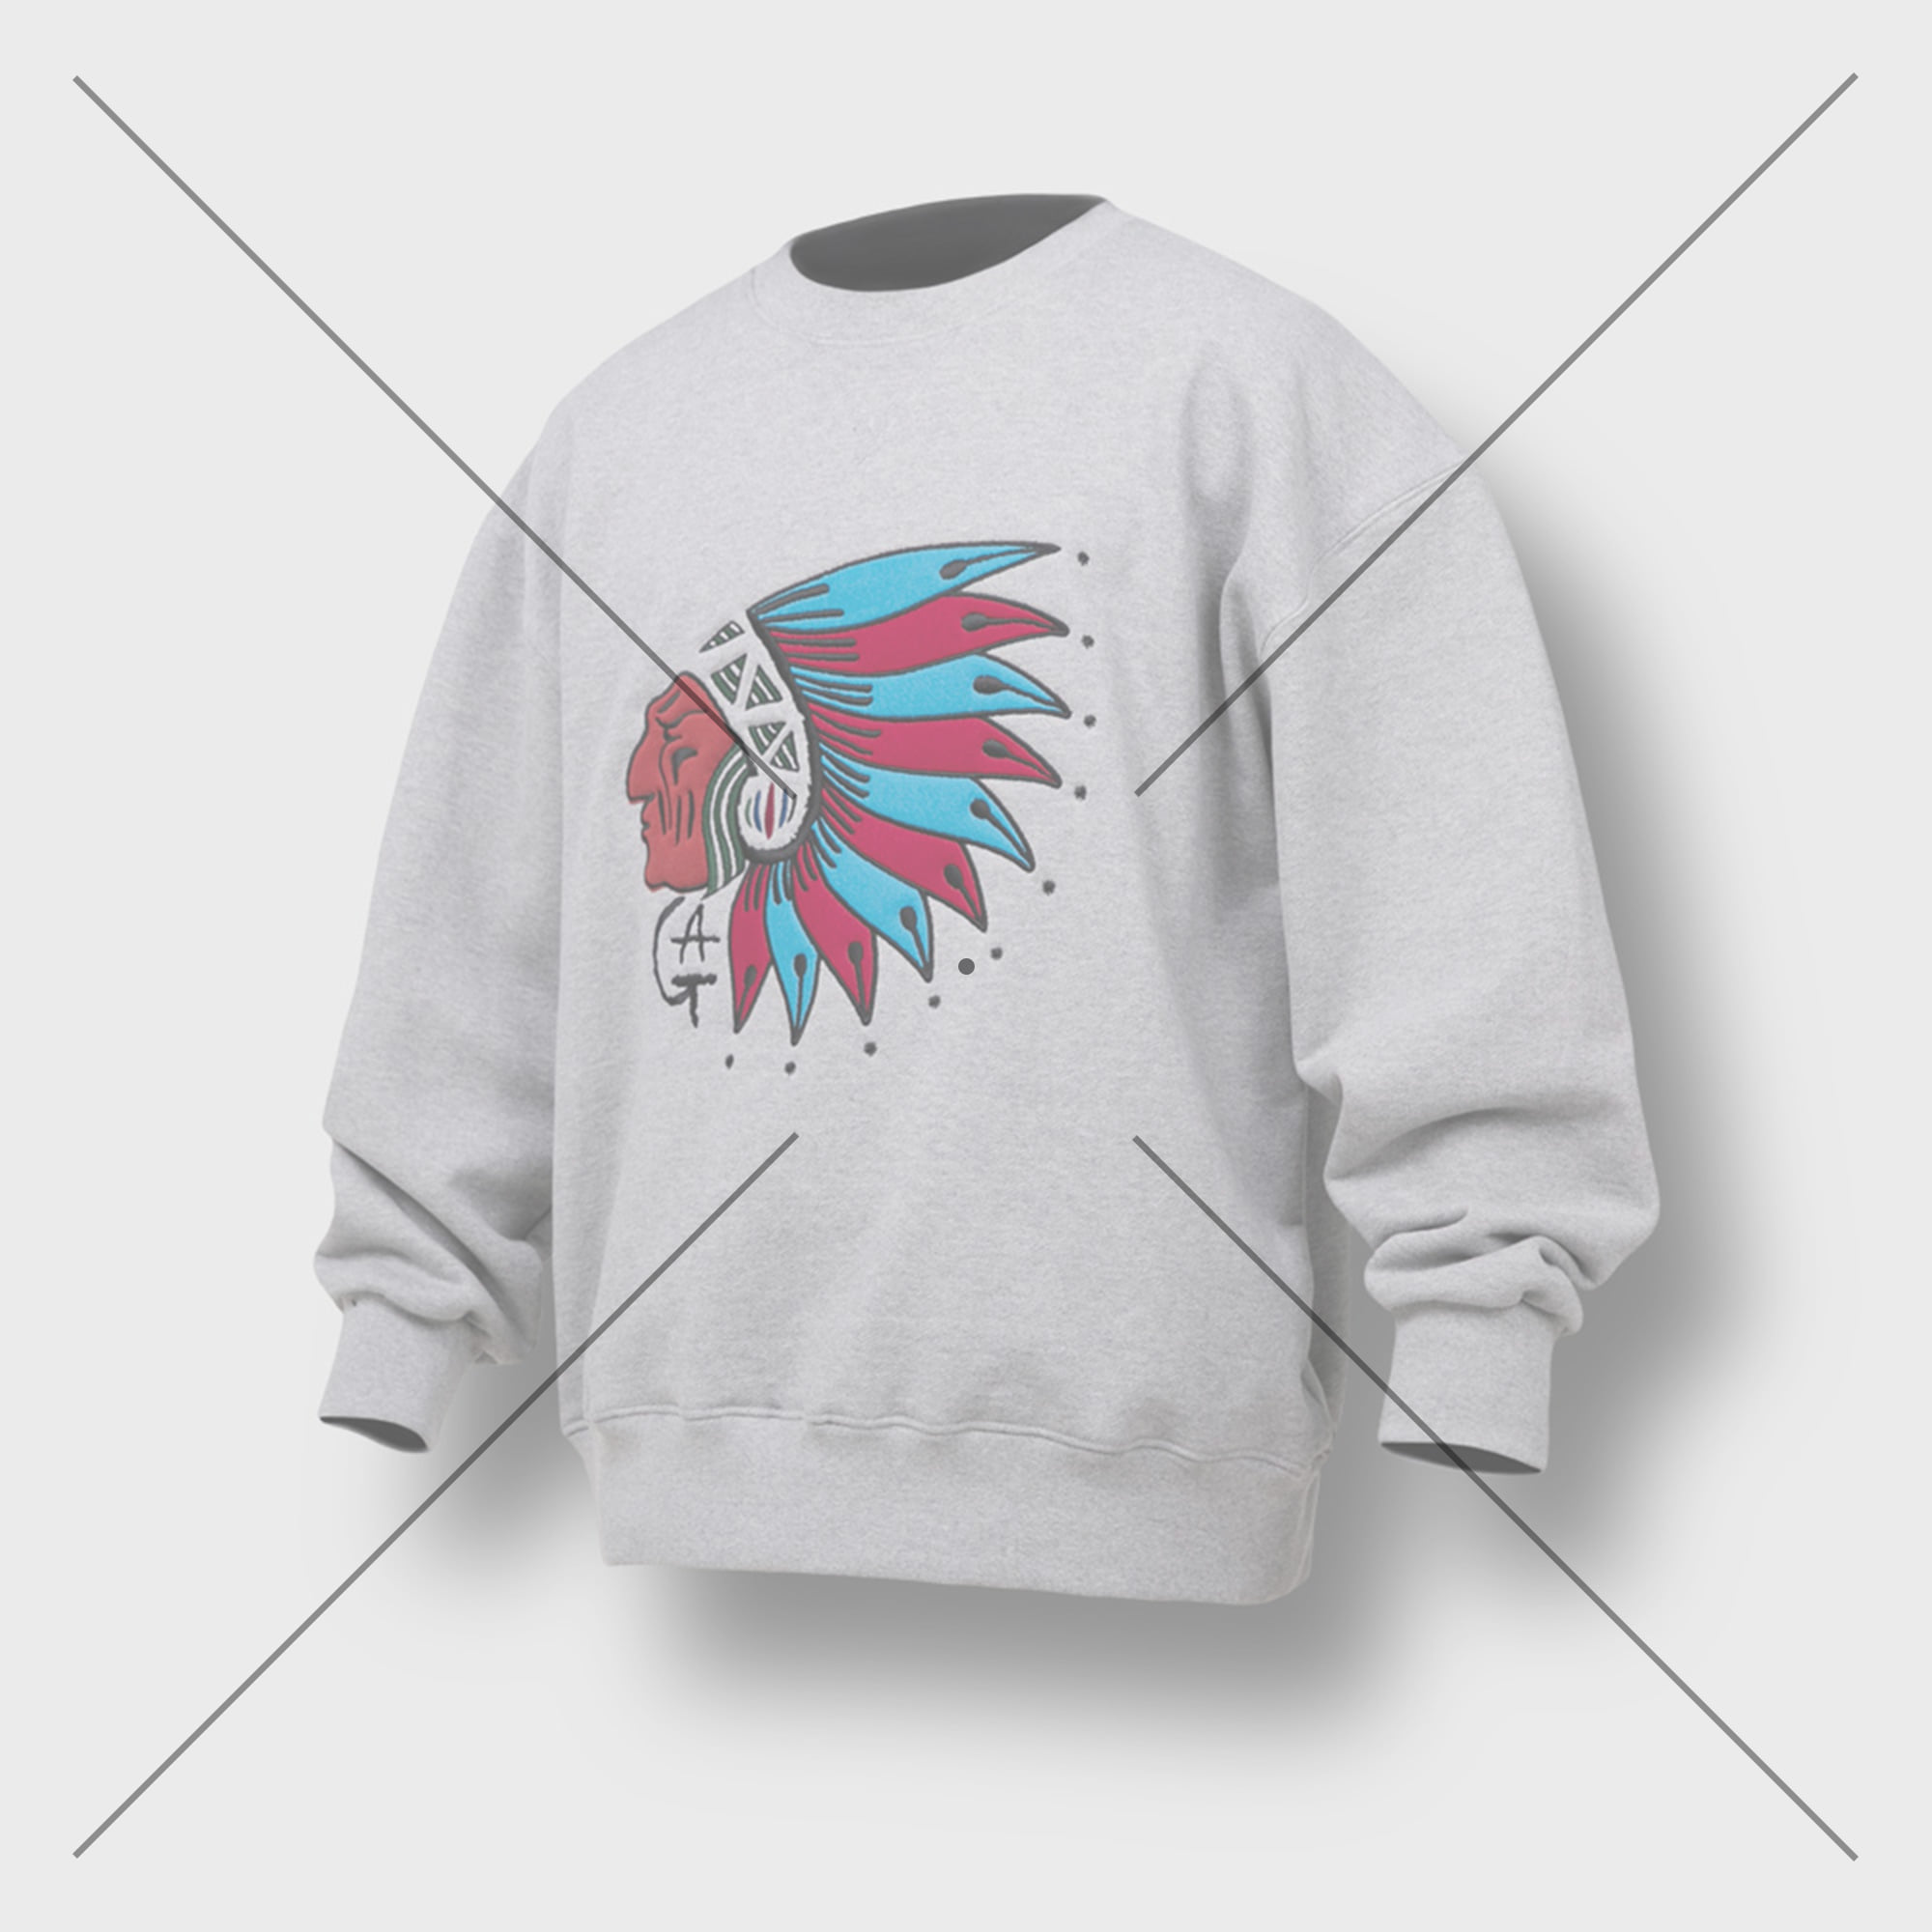 [AG] Native American Embroidery Sweat Shirt - Grey